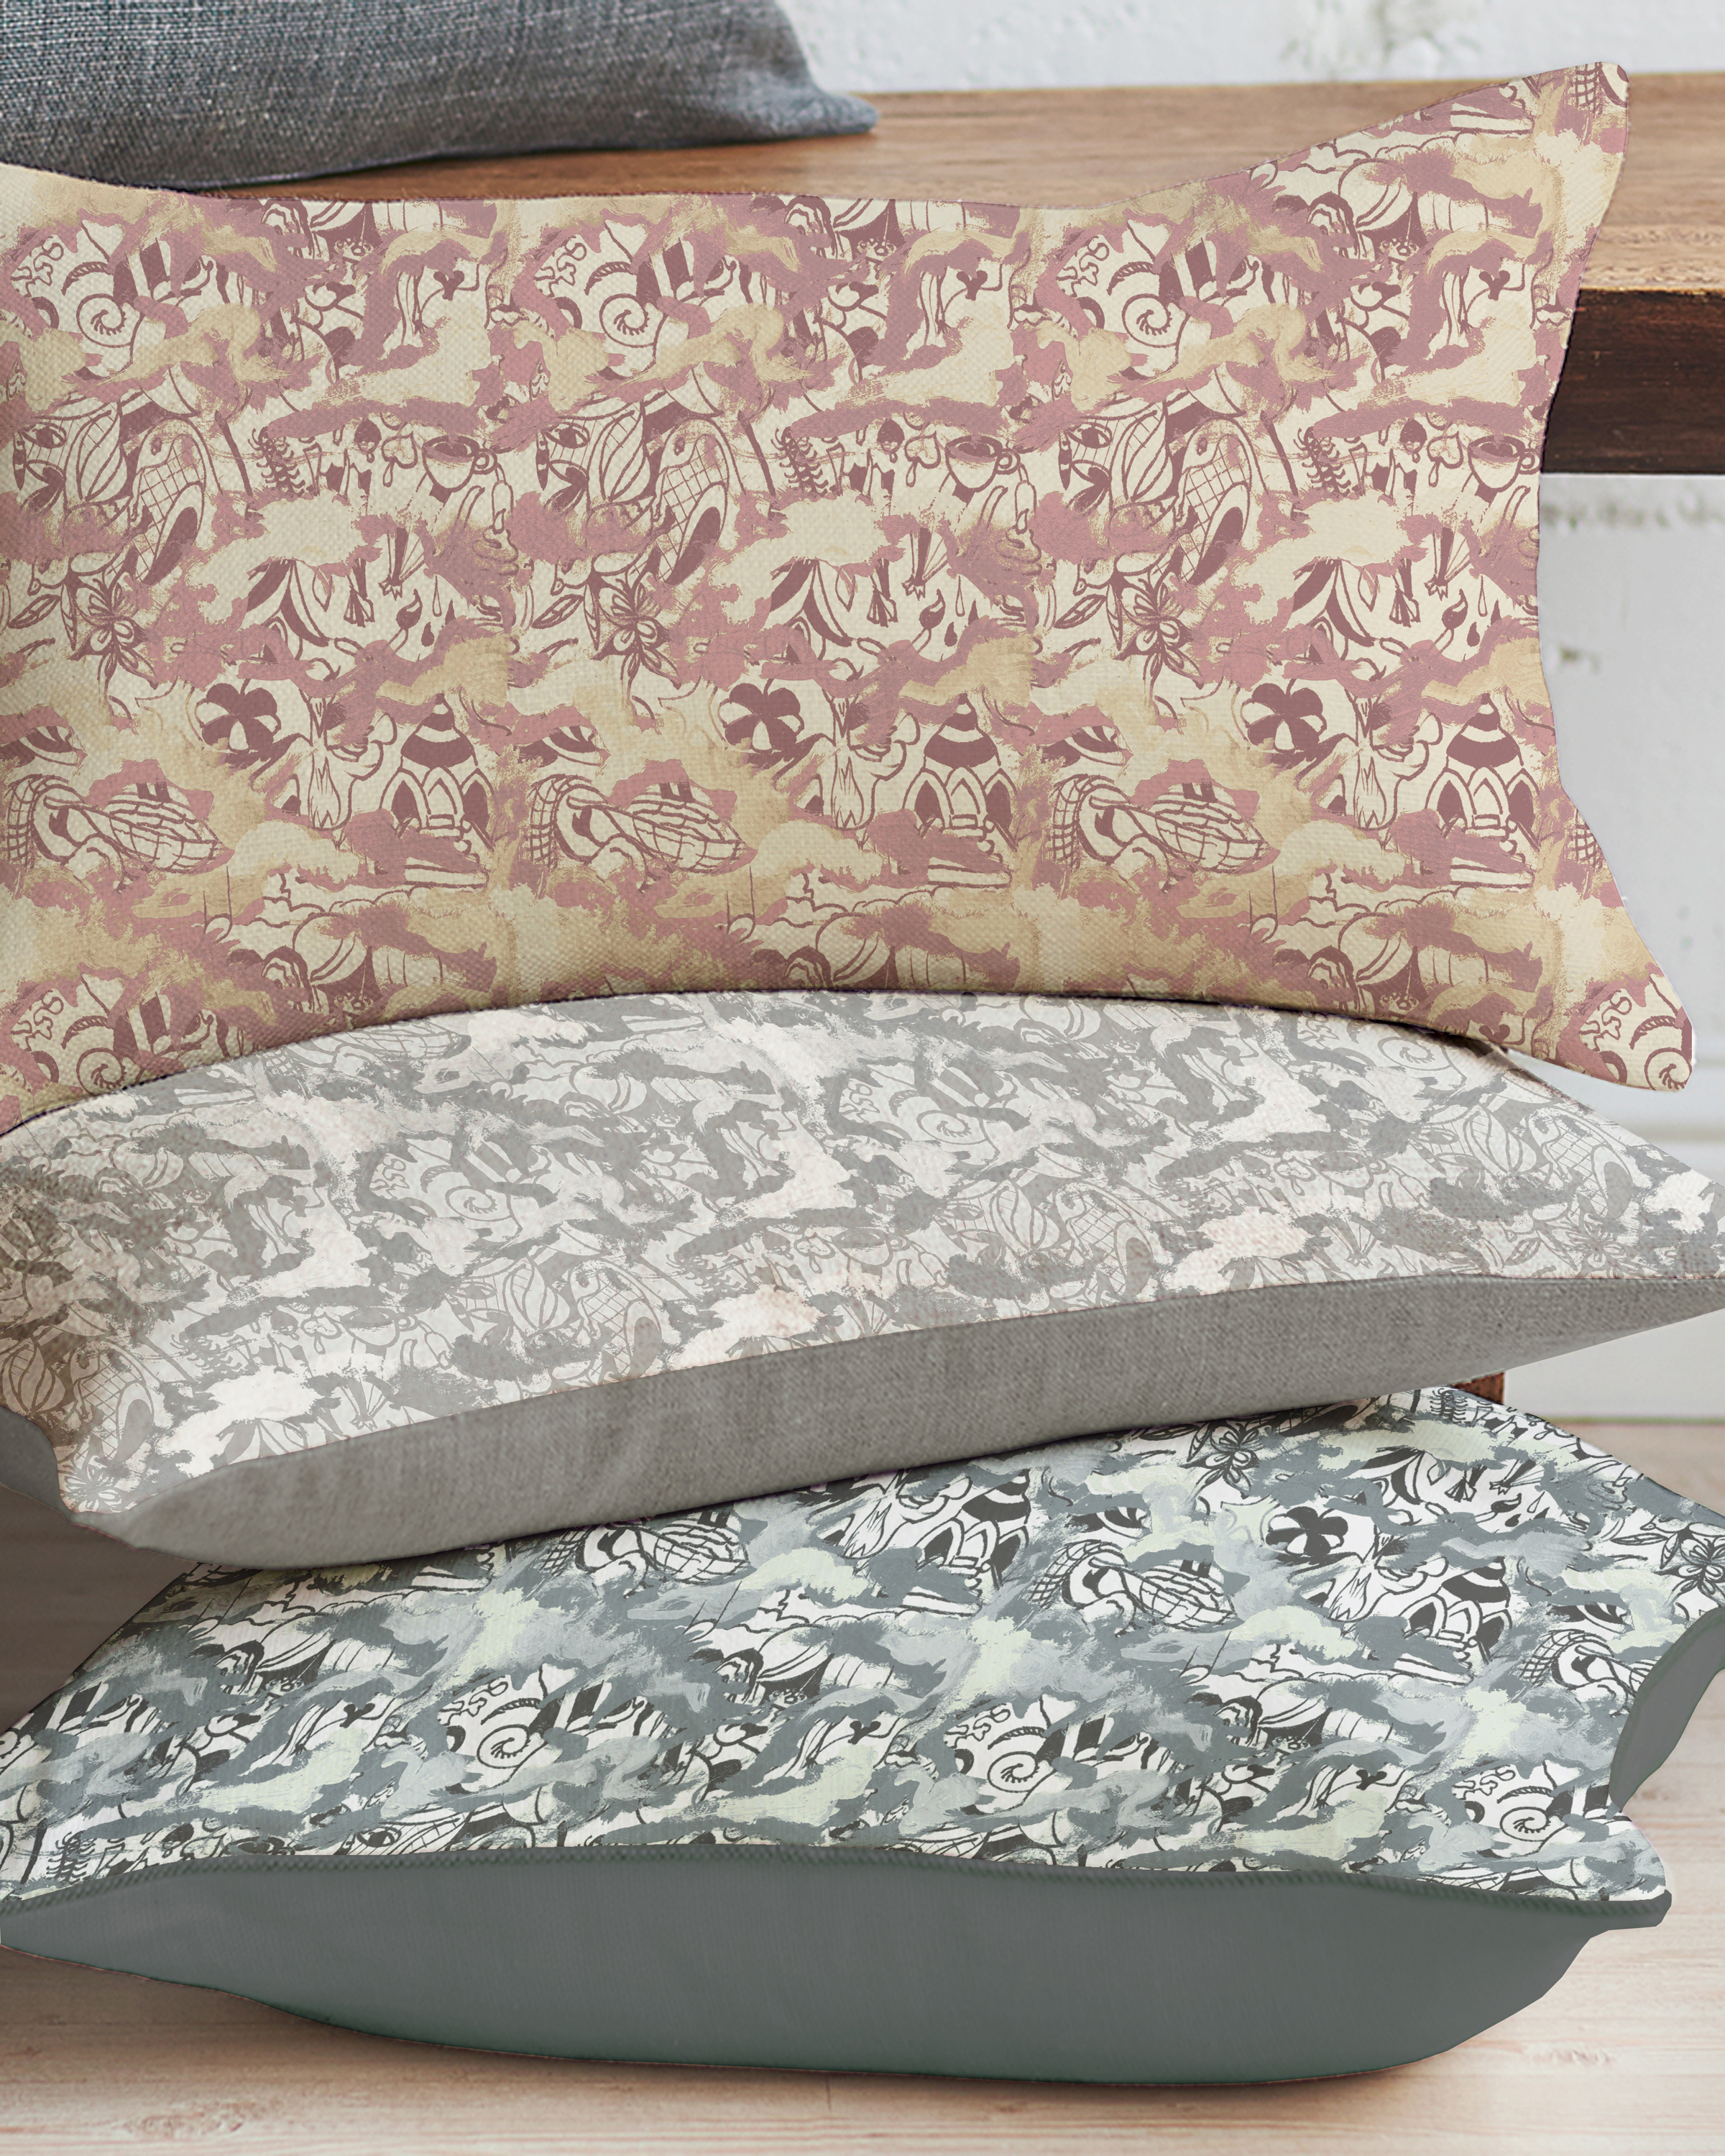 linen pillows copy.jpg